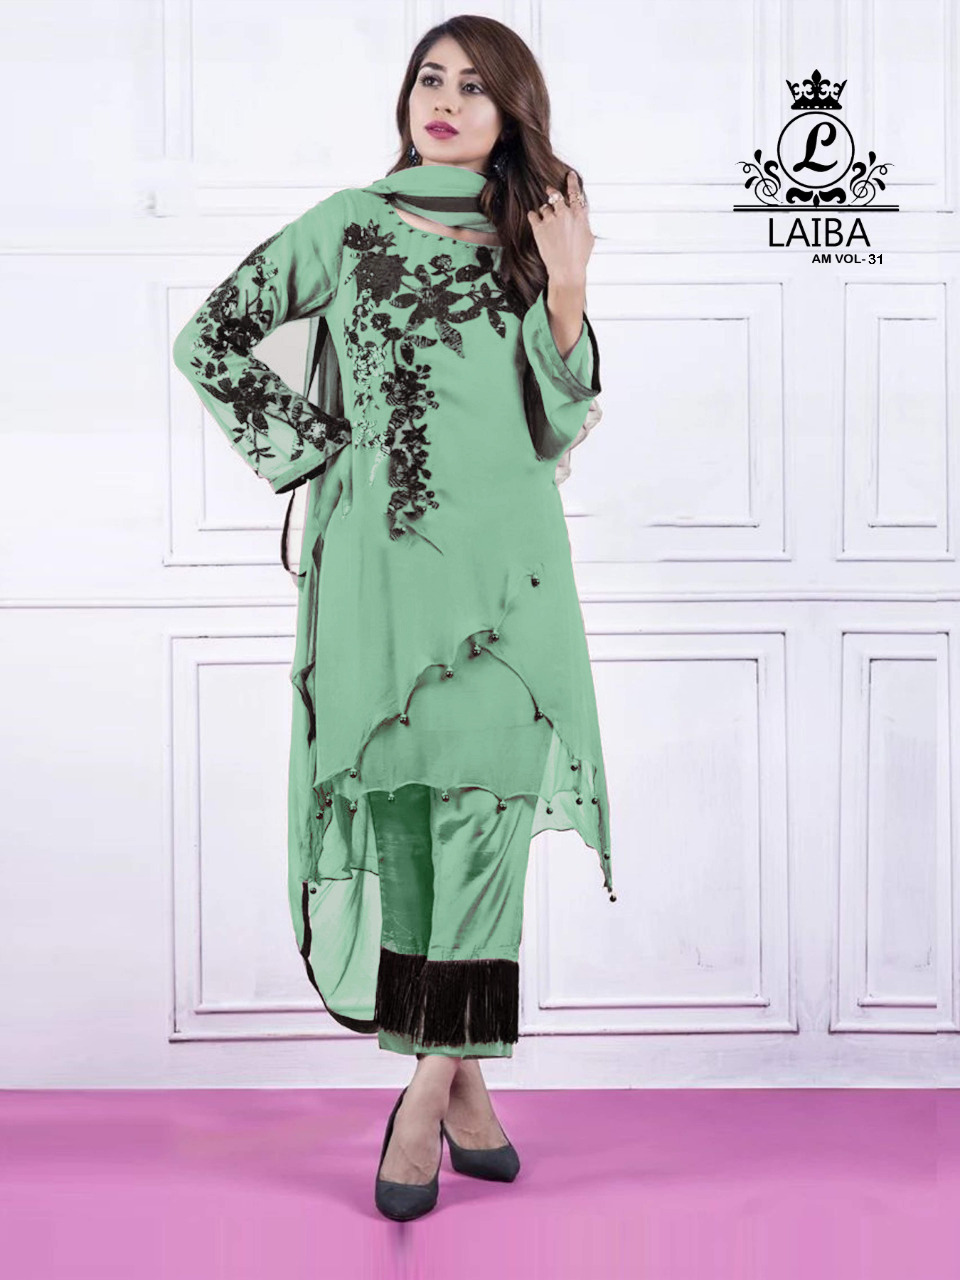 LAIBA DESIGNER TUNICS AM VOL 31 PISTA GREEN